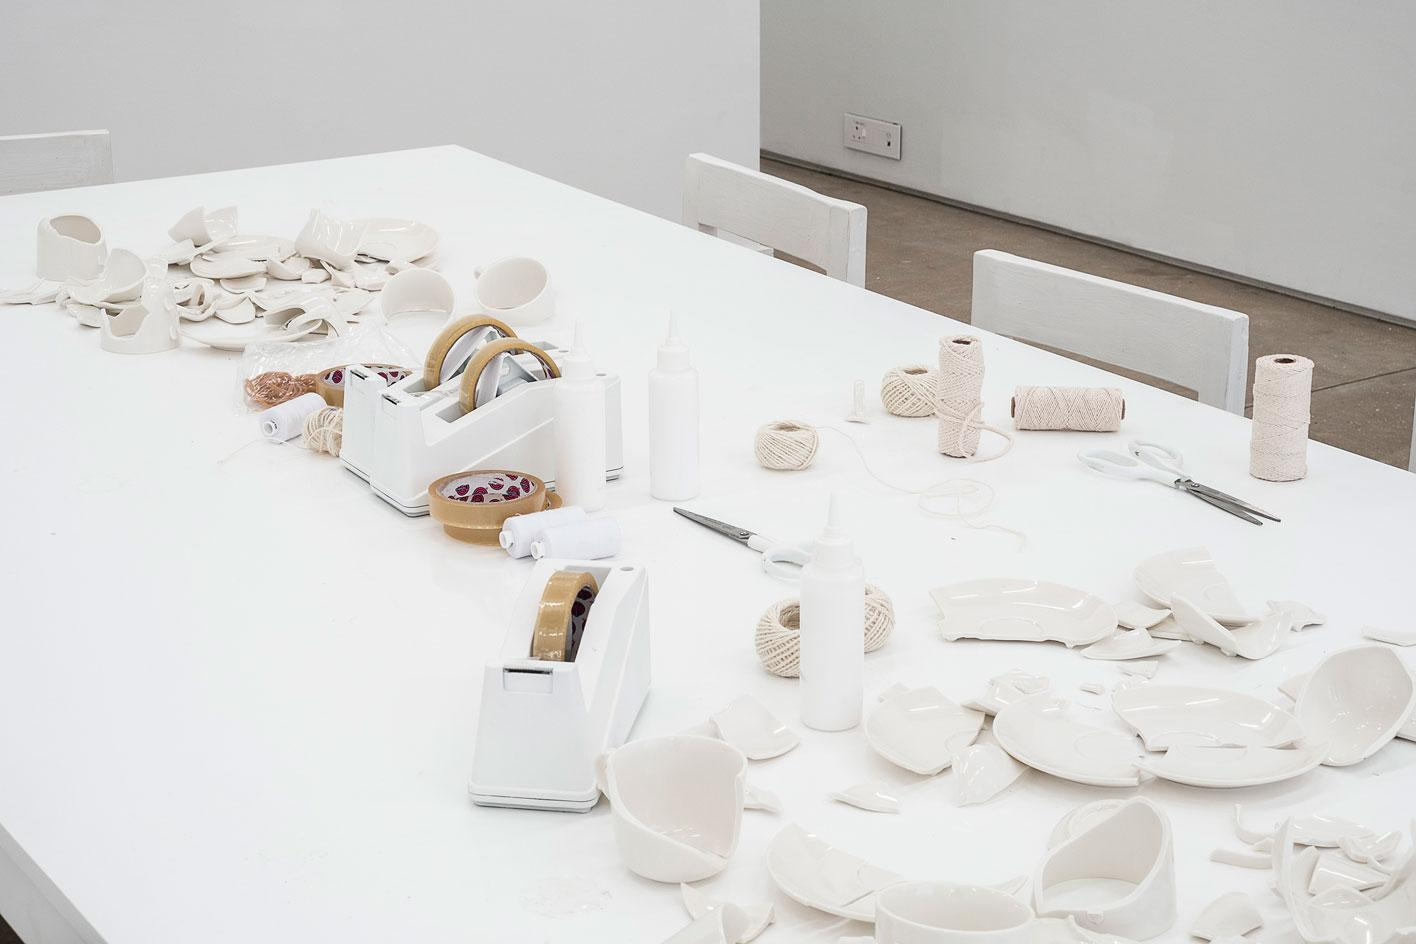 Yoko Ono Mend Piece 1966/ 2018 Broken cups and saucers, thread, glue, tape Installation view: 'You & I', A4 Arts Foundation, Cape Town, South Africa, 2018 Image courtesy the artist / photo: Kyle Morland